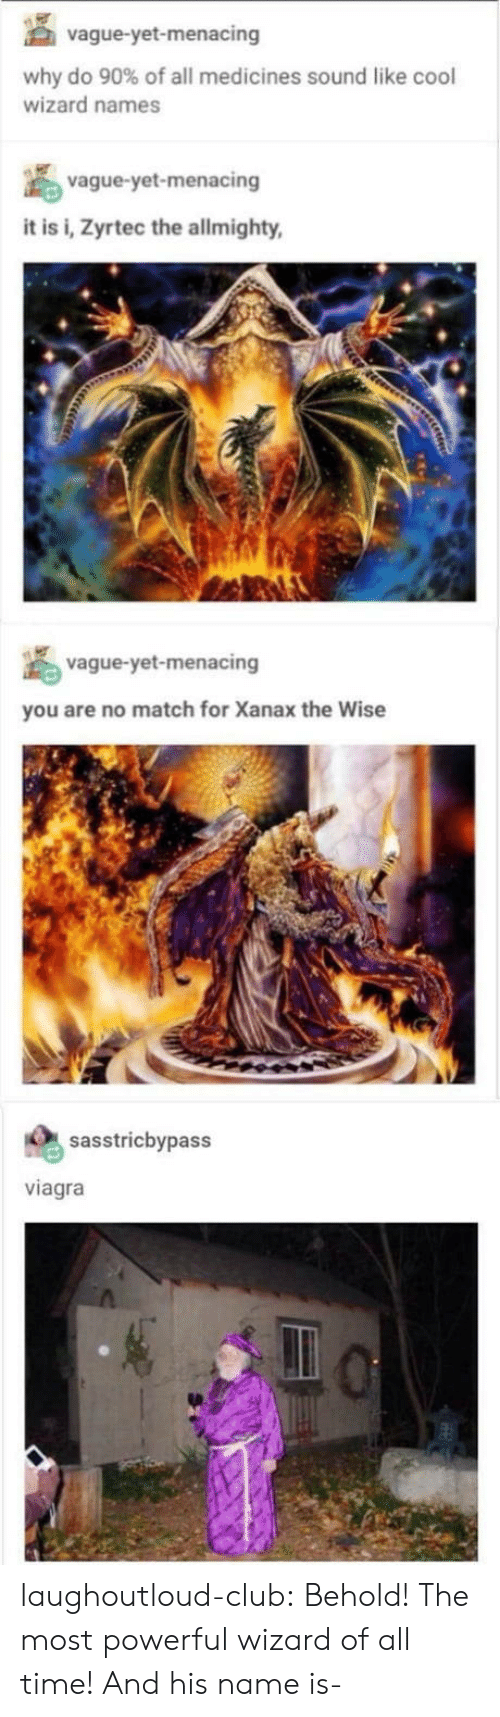 Club, Tumblr, and Xanax: vague-yet-menacing  why do 90% of all medicines sound like cool  wizard names  vague-yet-menacing  it is i, Zyrtec the allmighty  vague-yet-menacing  you are no match for Xanax the Wise  sasstricbypass  viagra laughoutloud-club:  Behold! The most powerful wizard of all time! And his name is-